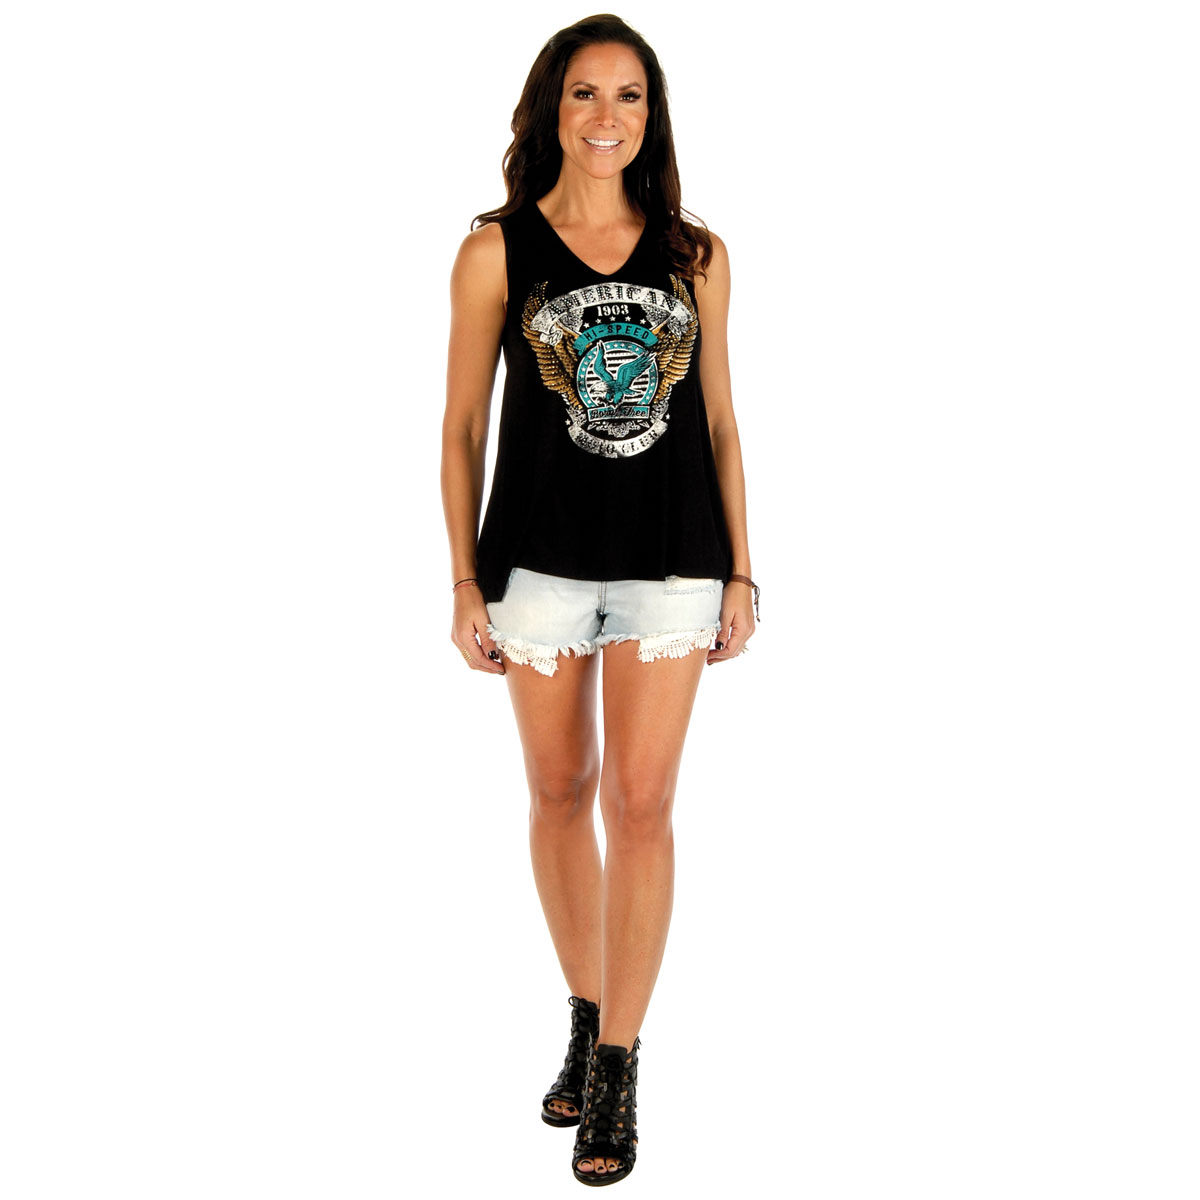 Liberty Wear Women's American Moto Club Black Tank Top